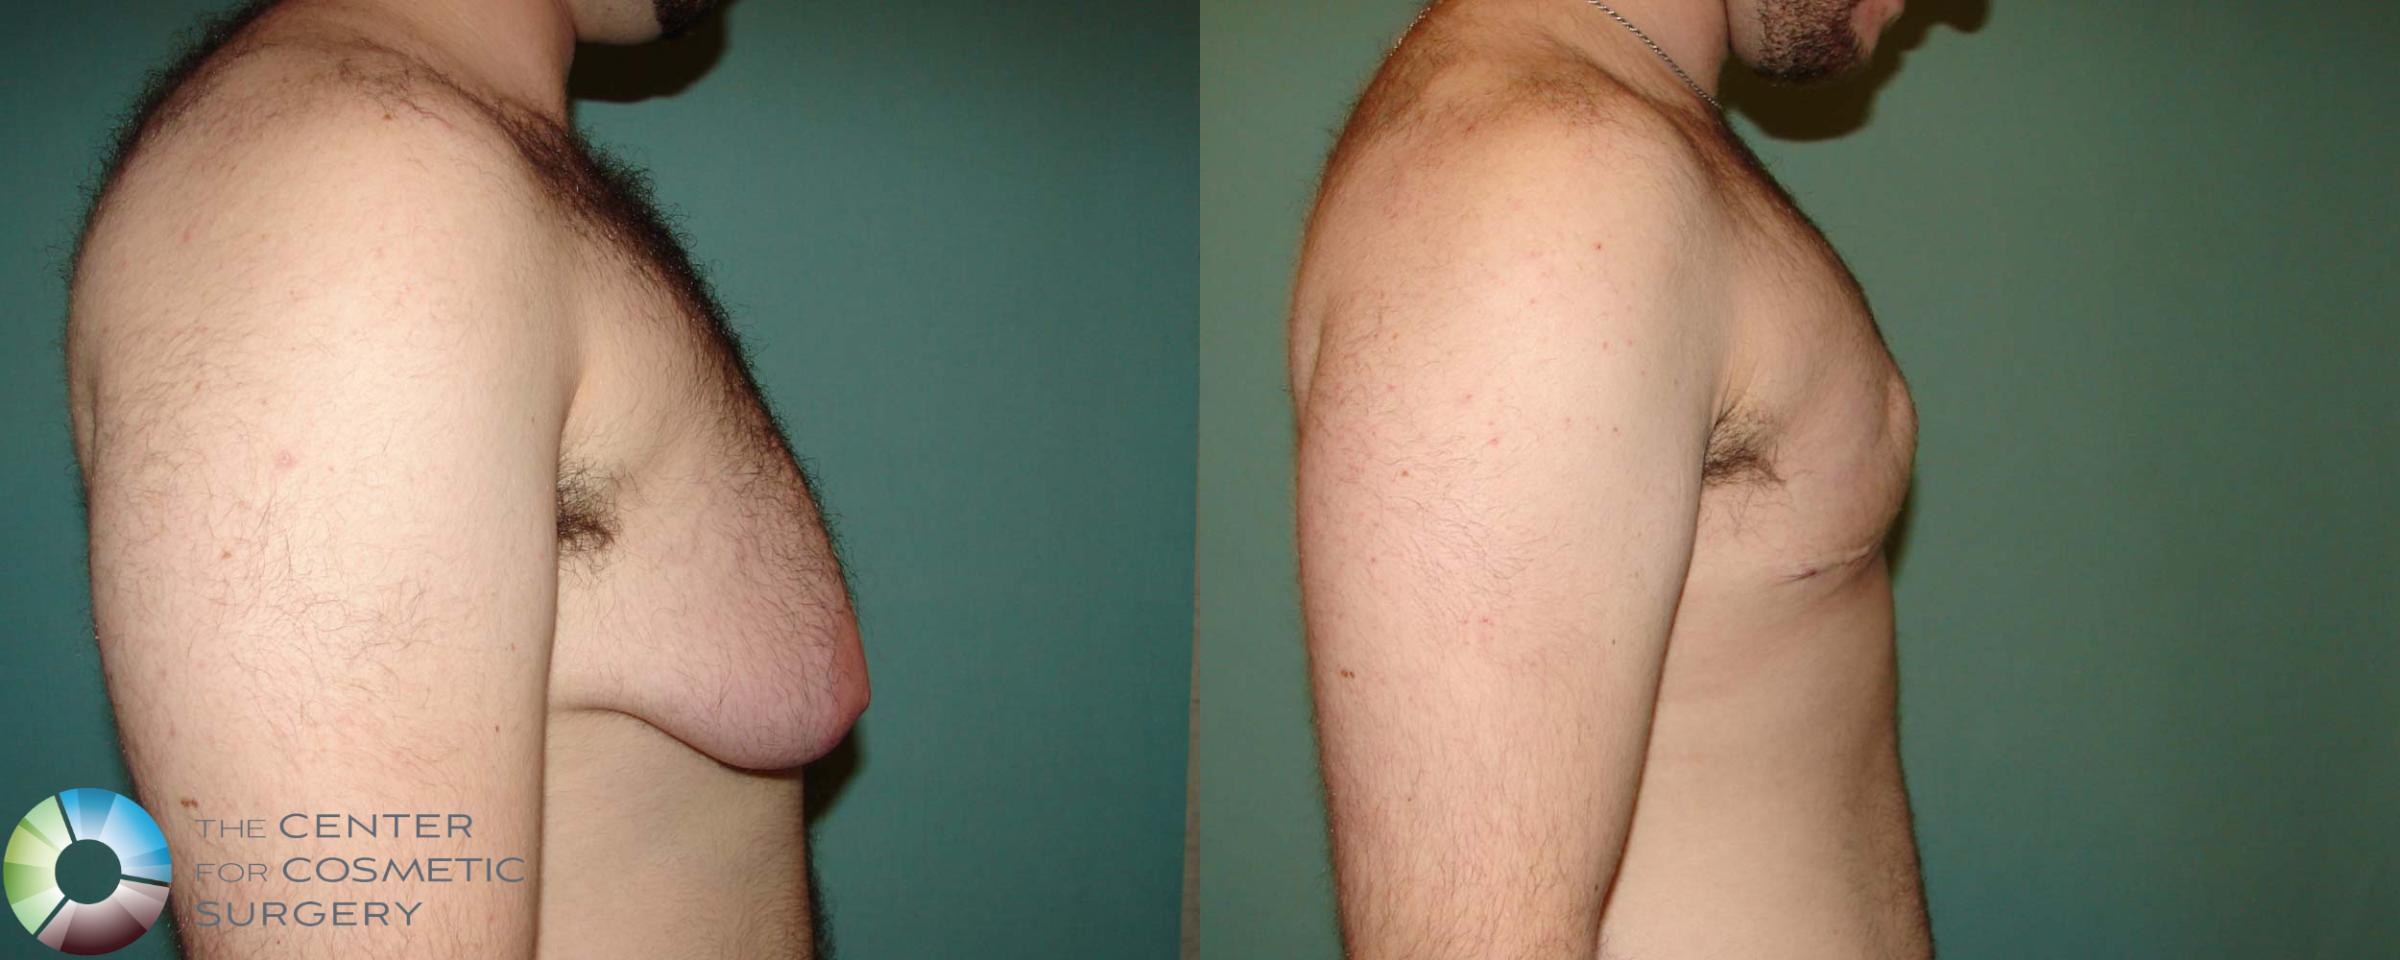 FTM Top Surgery/Chest Masculinization Case 674 Before & After View #3 | Golden, CO | The Center for Cosmetic Surgery